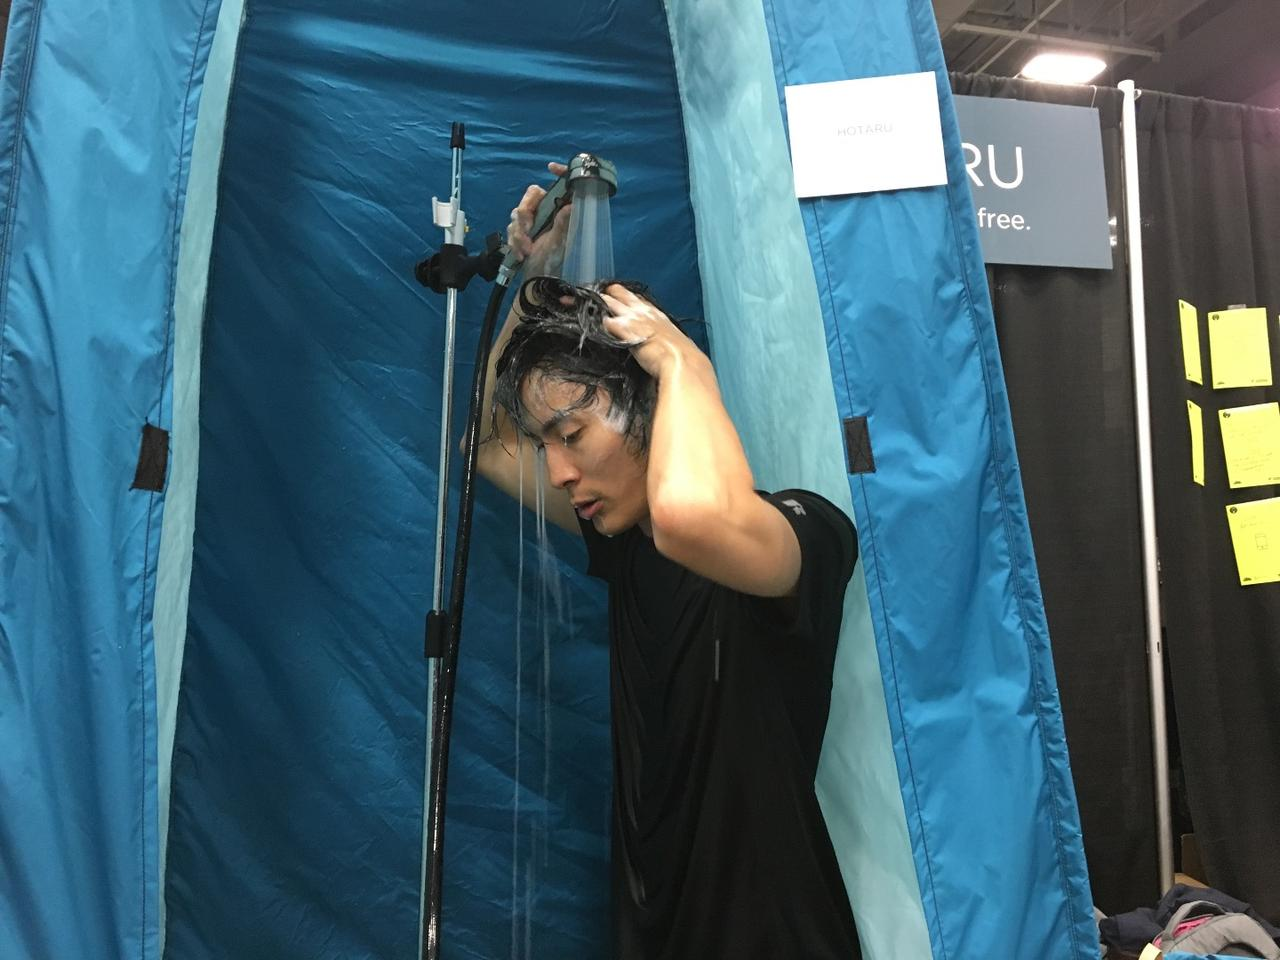 One of the Hotru creators getting clean at the SXSW trade show